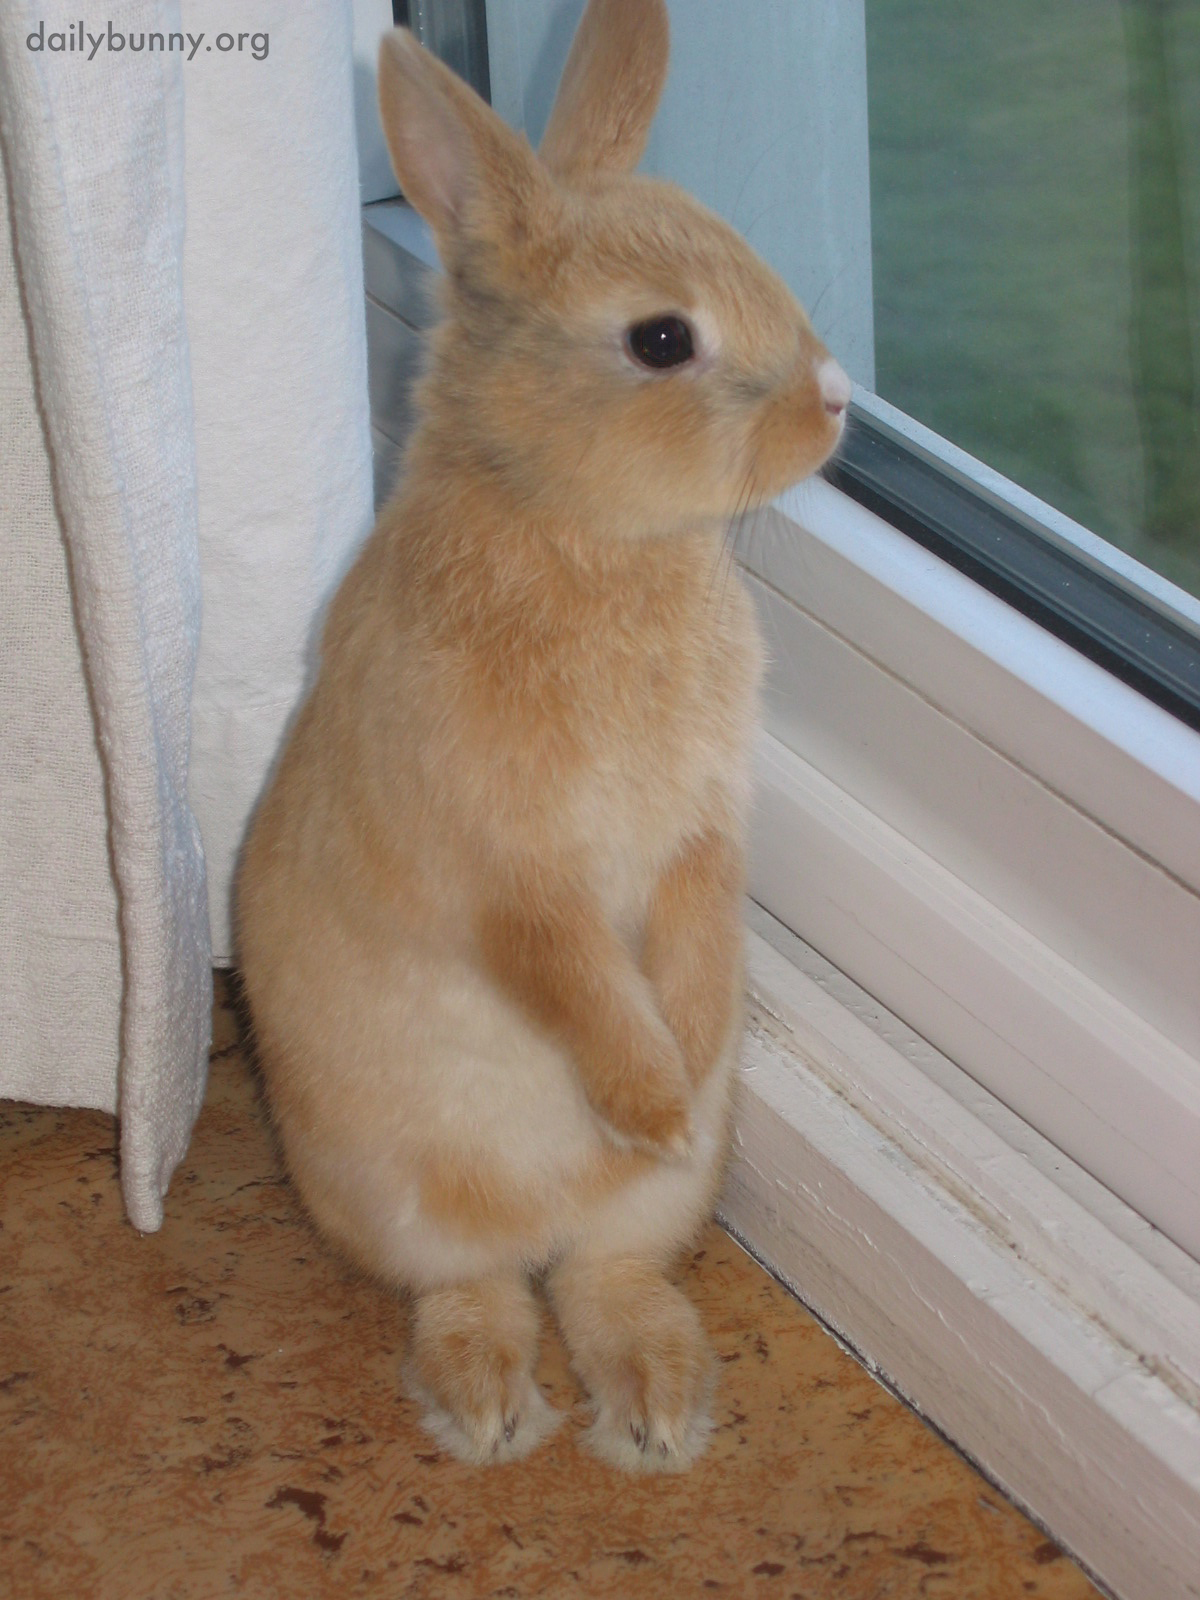 Tiny Bunny Stands Up to Gaze Out the Window